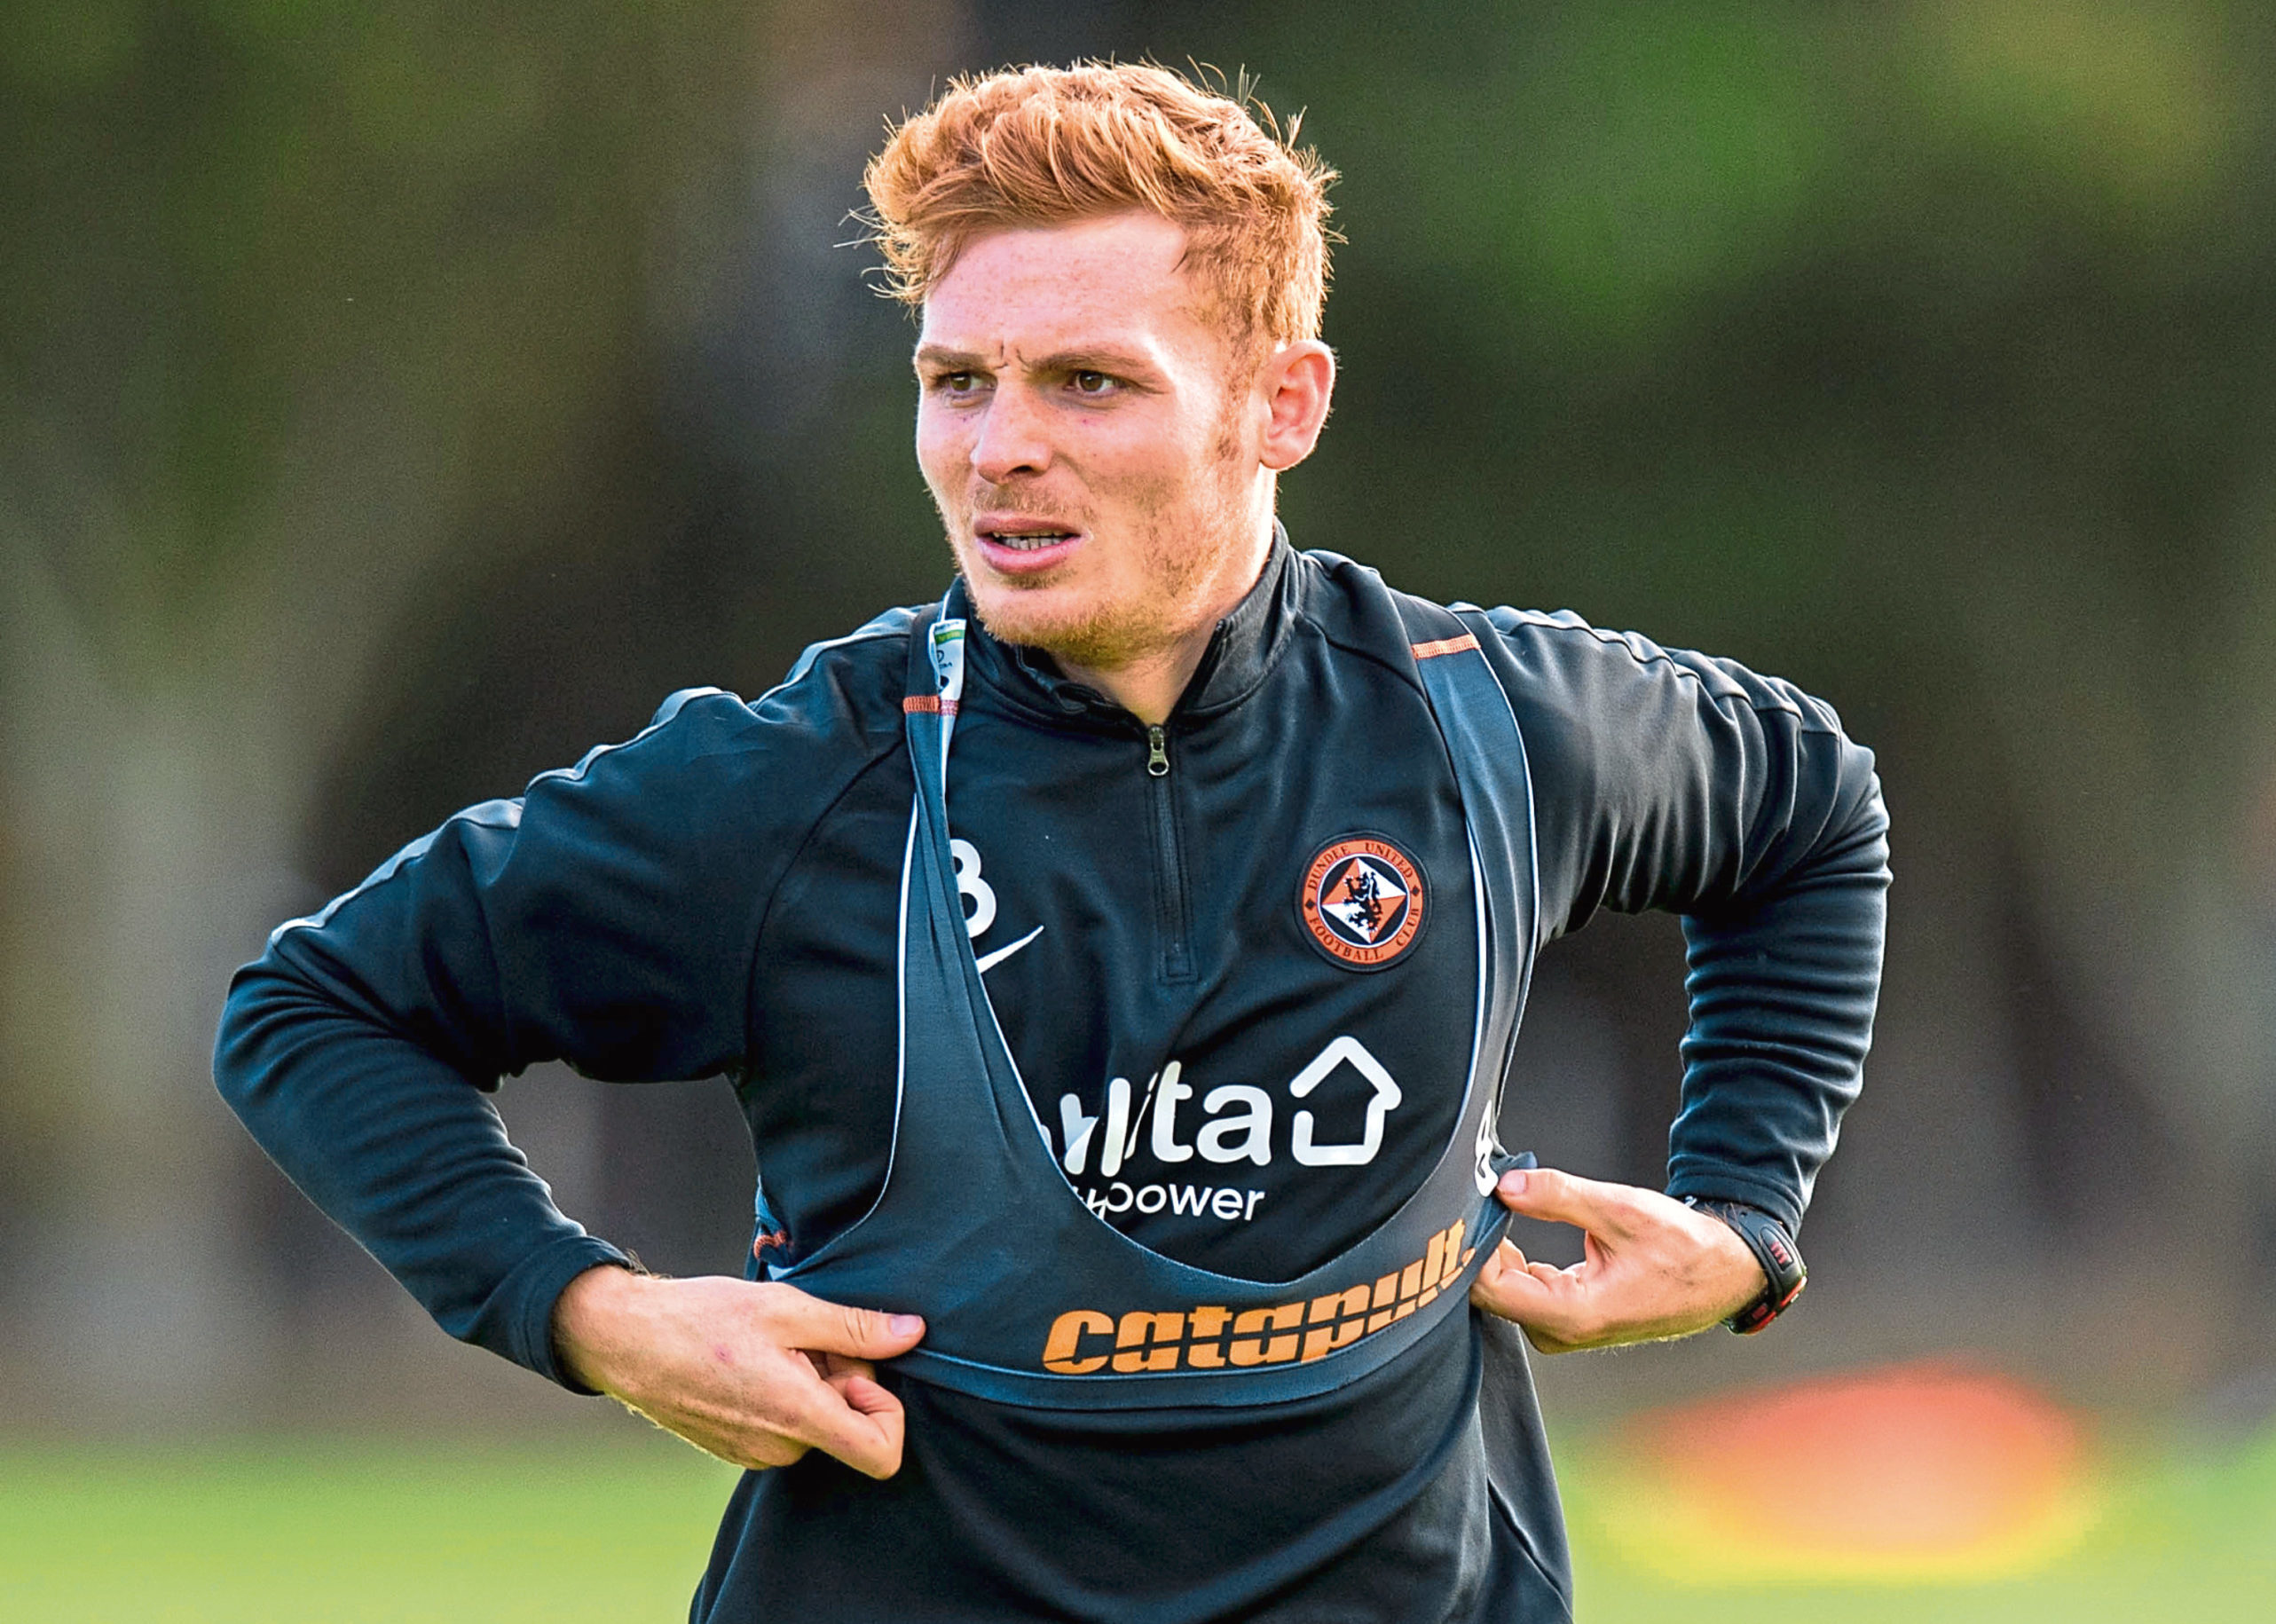 Dundee United's Fraser Fyvie in training at St Andrews.